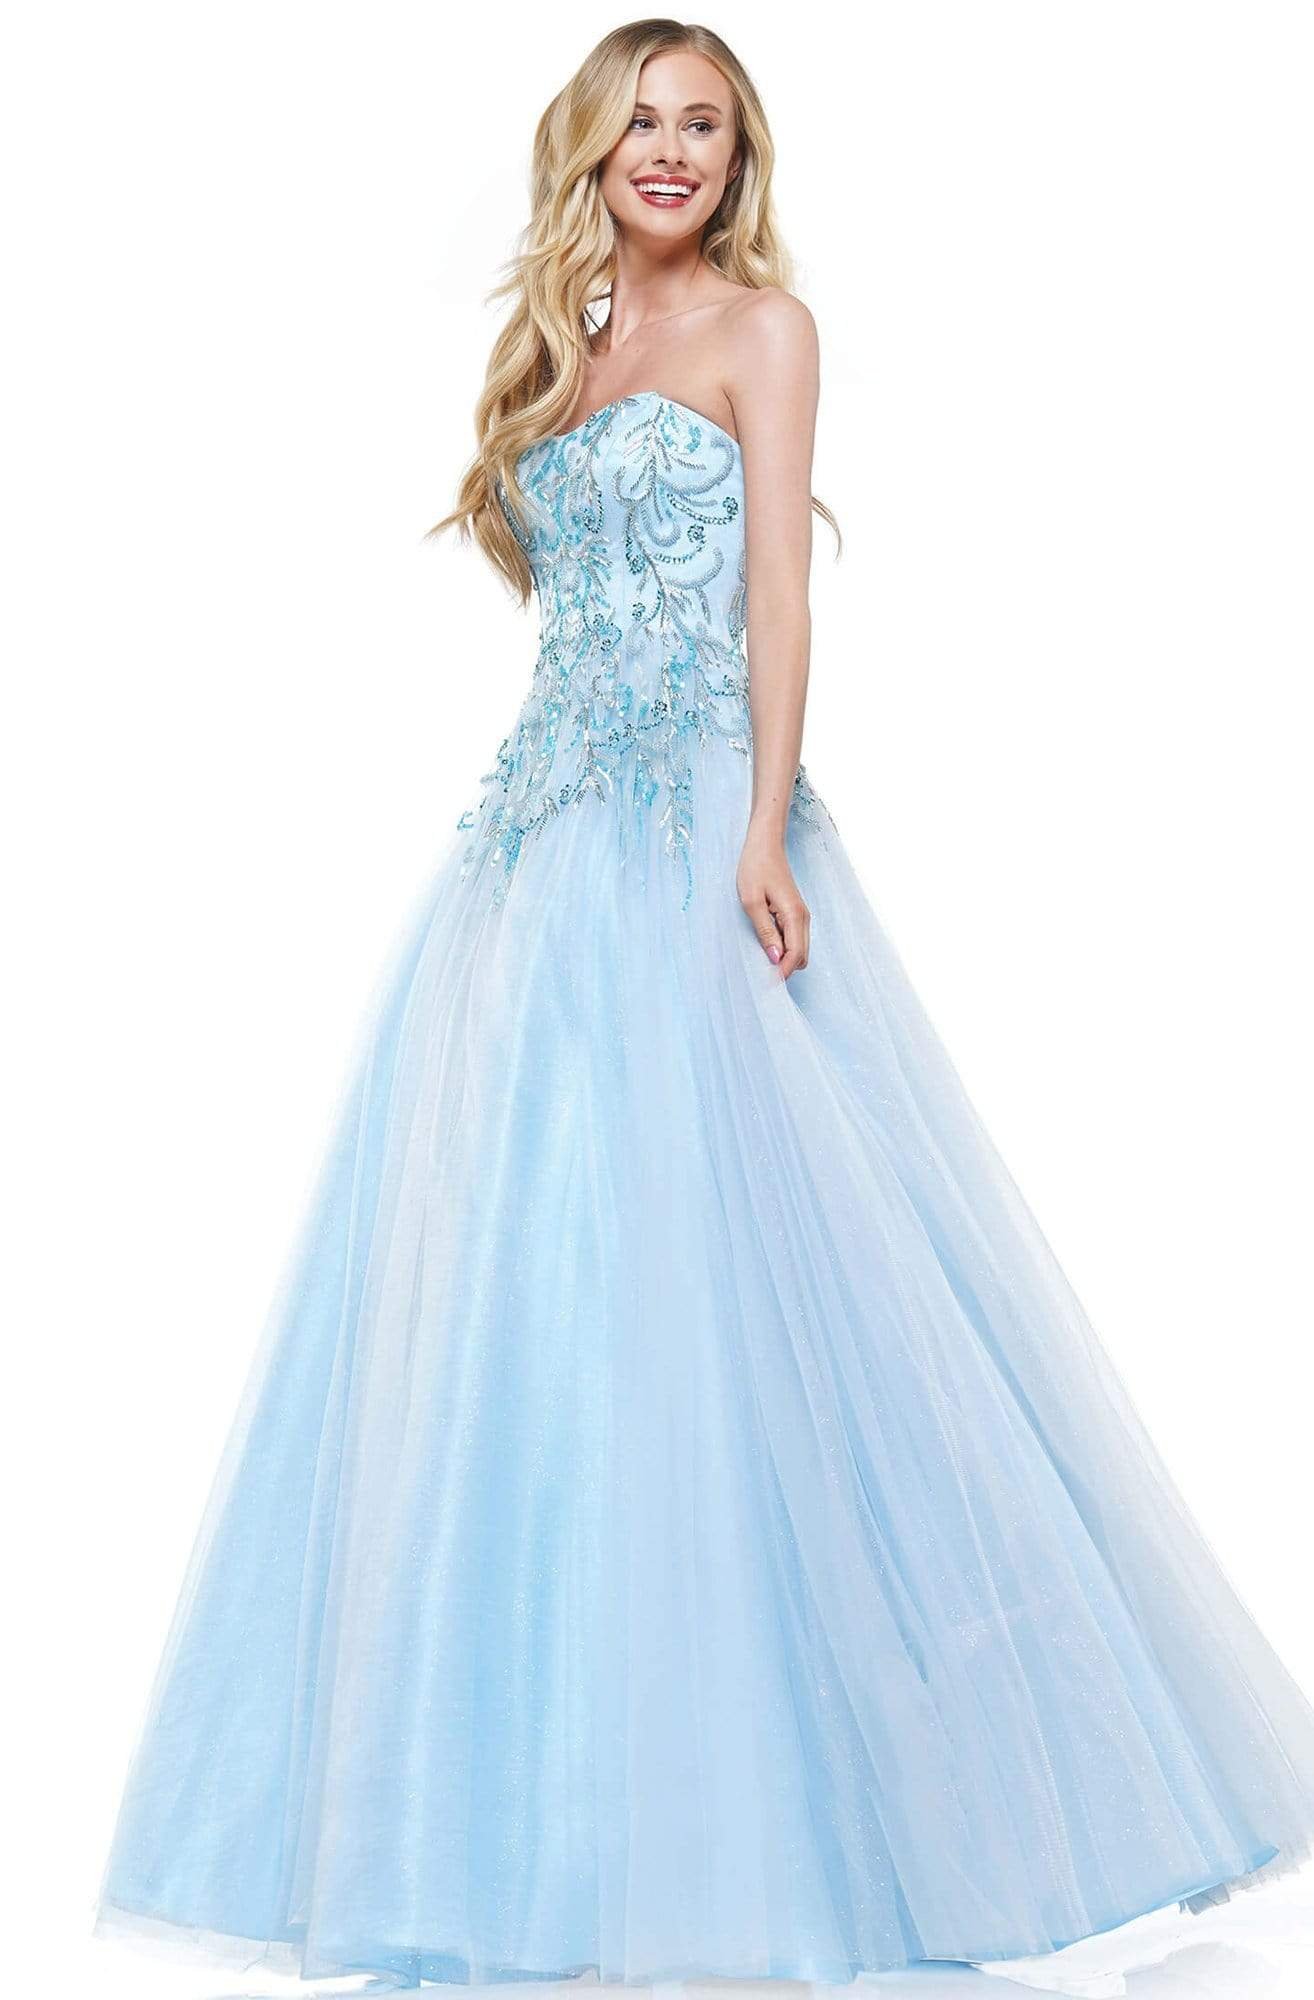 Colors Dress - 2226 Strapless Swirl-Motif Glitter Tulle Gown In Blue